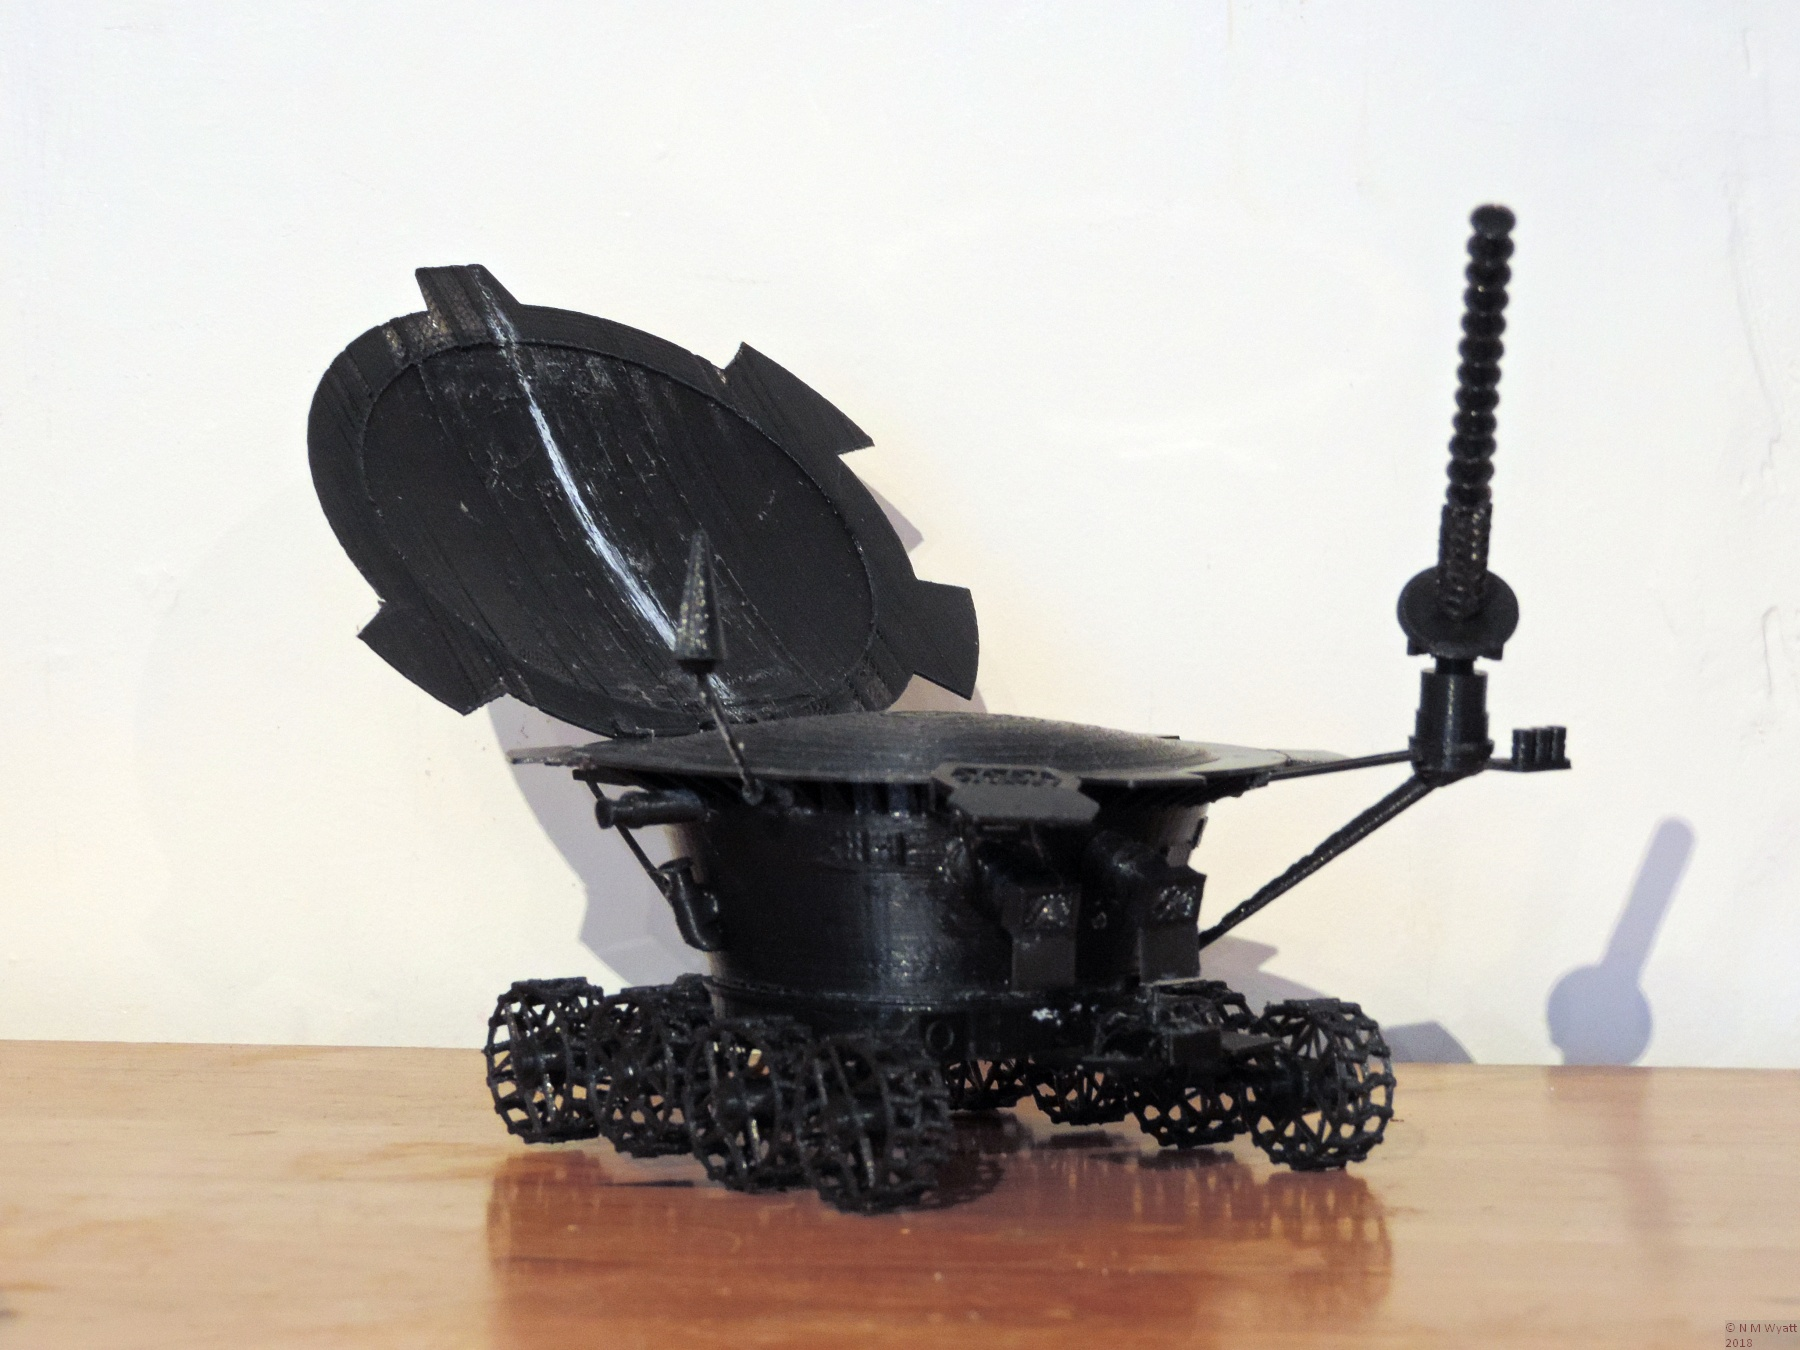 3d printed model of Lunokhod 1